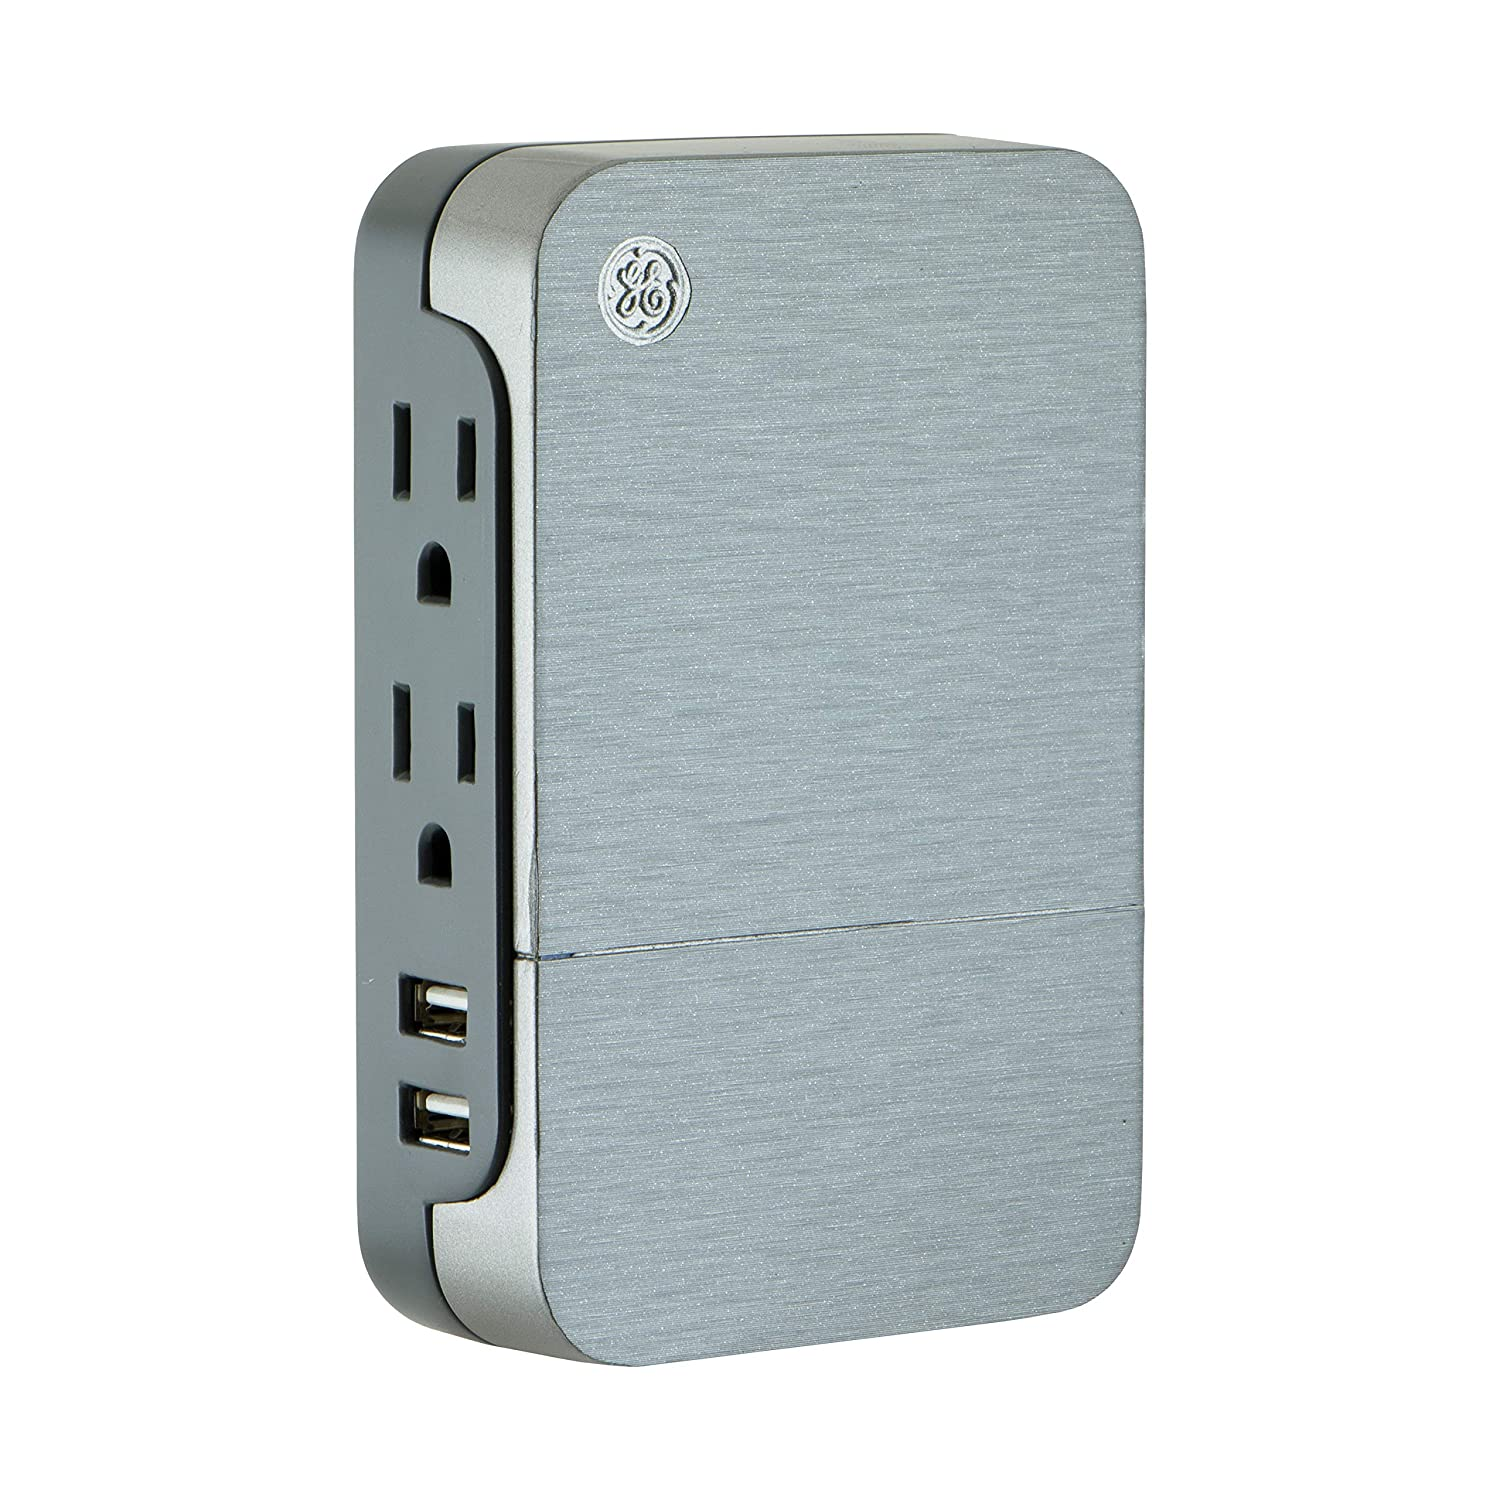 GE Ultrapro 2 Outlet + 2 USB Side Access Surge Protector Tap, Plug-In, 2.4 Amp, 860 Joules, 2 Outlet + 2 USB, Silver, 33642